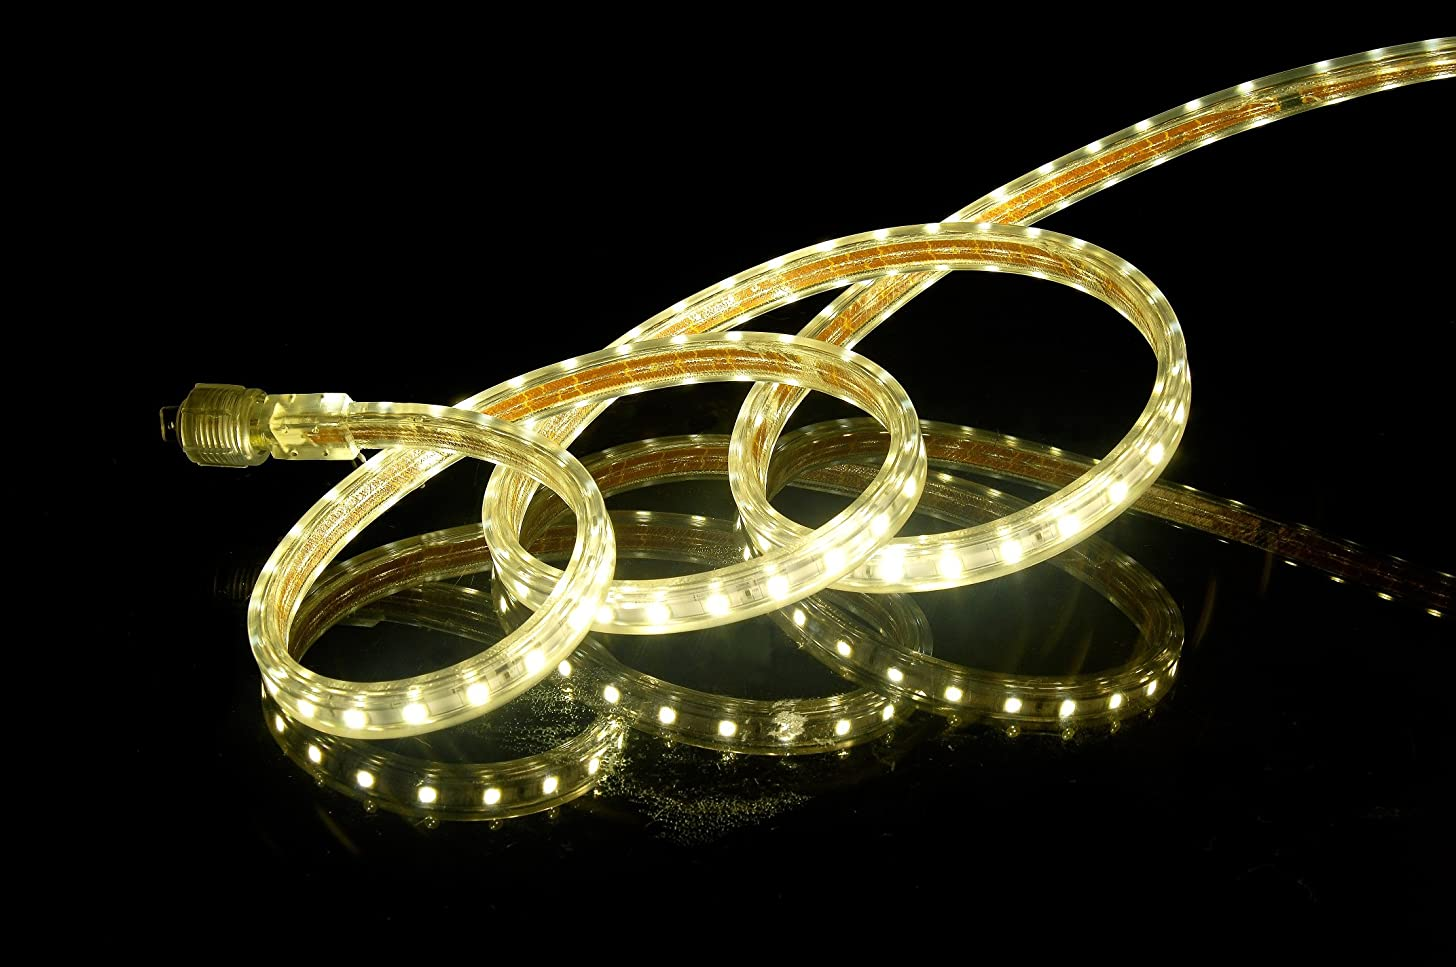 CBConcept UL Listed, 20 Feet,Super Bright 5400 Lumen, 3000K Warm White, Dimmable, 110-120V AC Flexible Flat LED Strip Rope Light, 360 Units 5050 SMD LEDs, Indoor/Outdoor Use, [Ready to use]